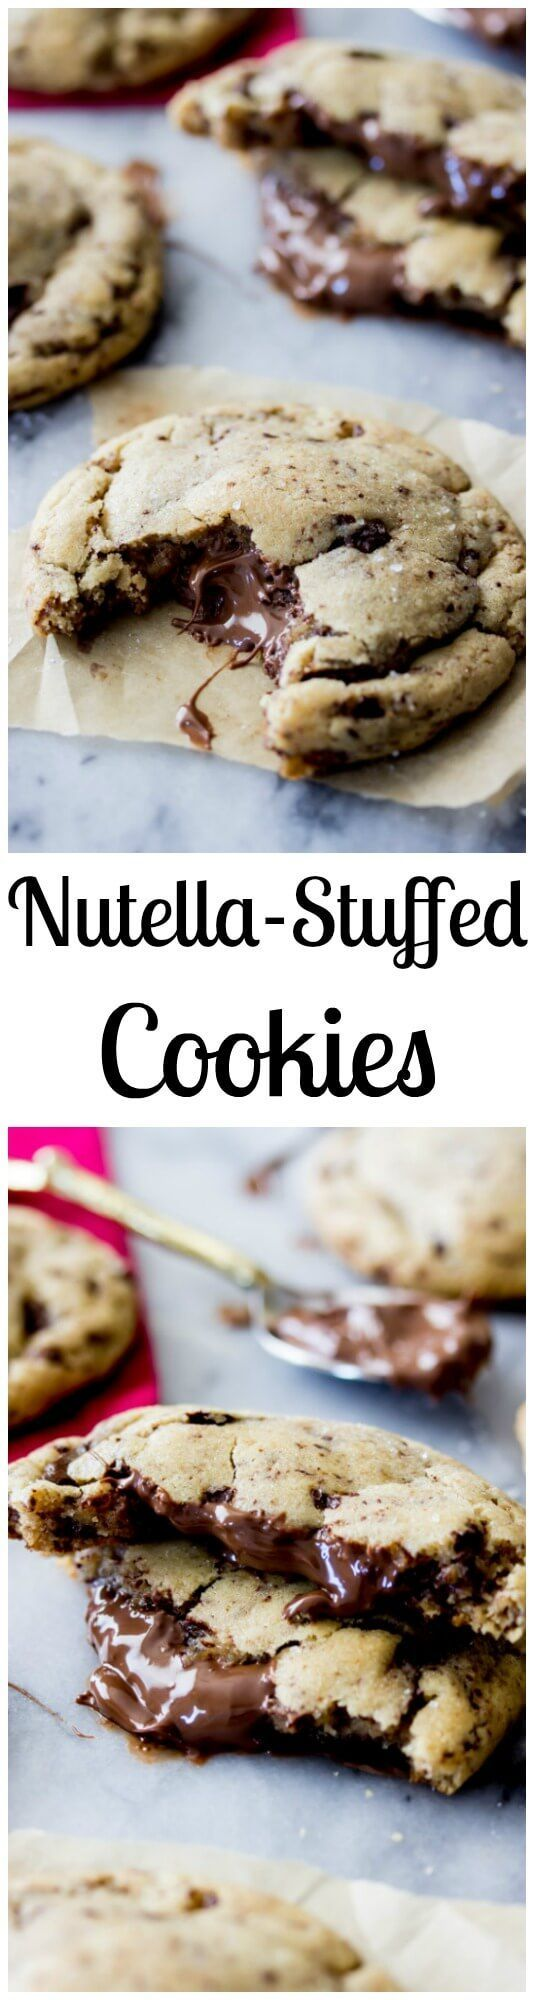 Nutella Stuffed Cookies - made with brown butter and sprinkled with sea salt! || Sugar Spun Run via /sugarspunrun/(Baking Shrimp Stuffed)